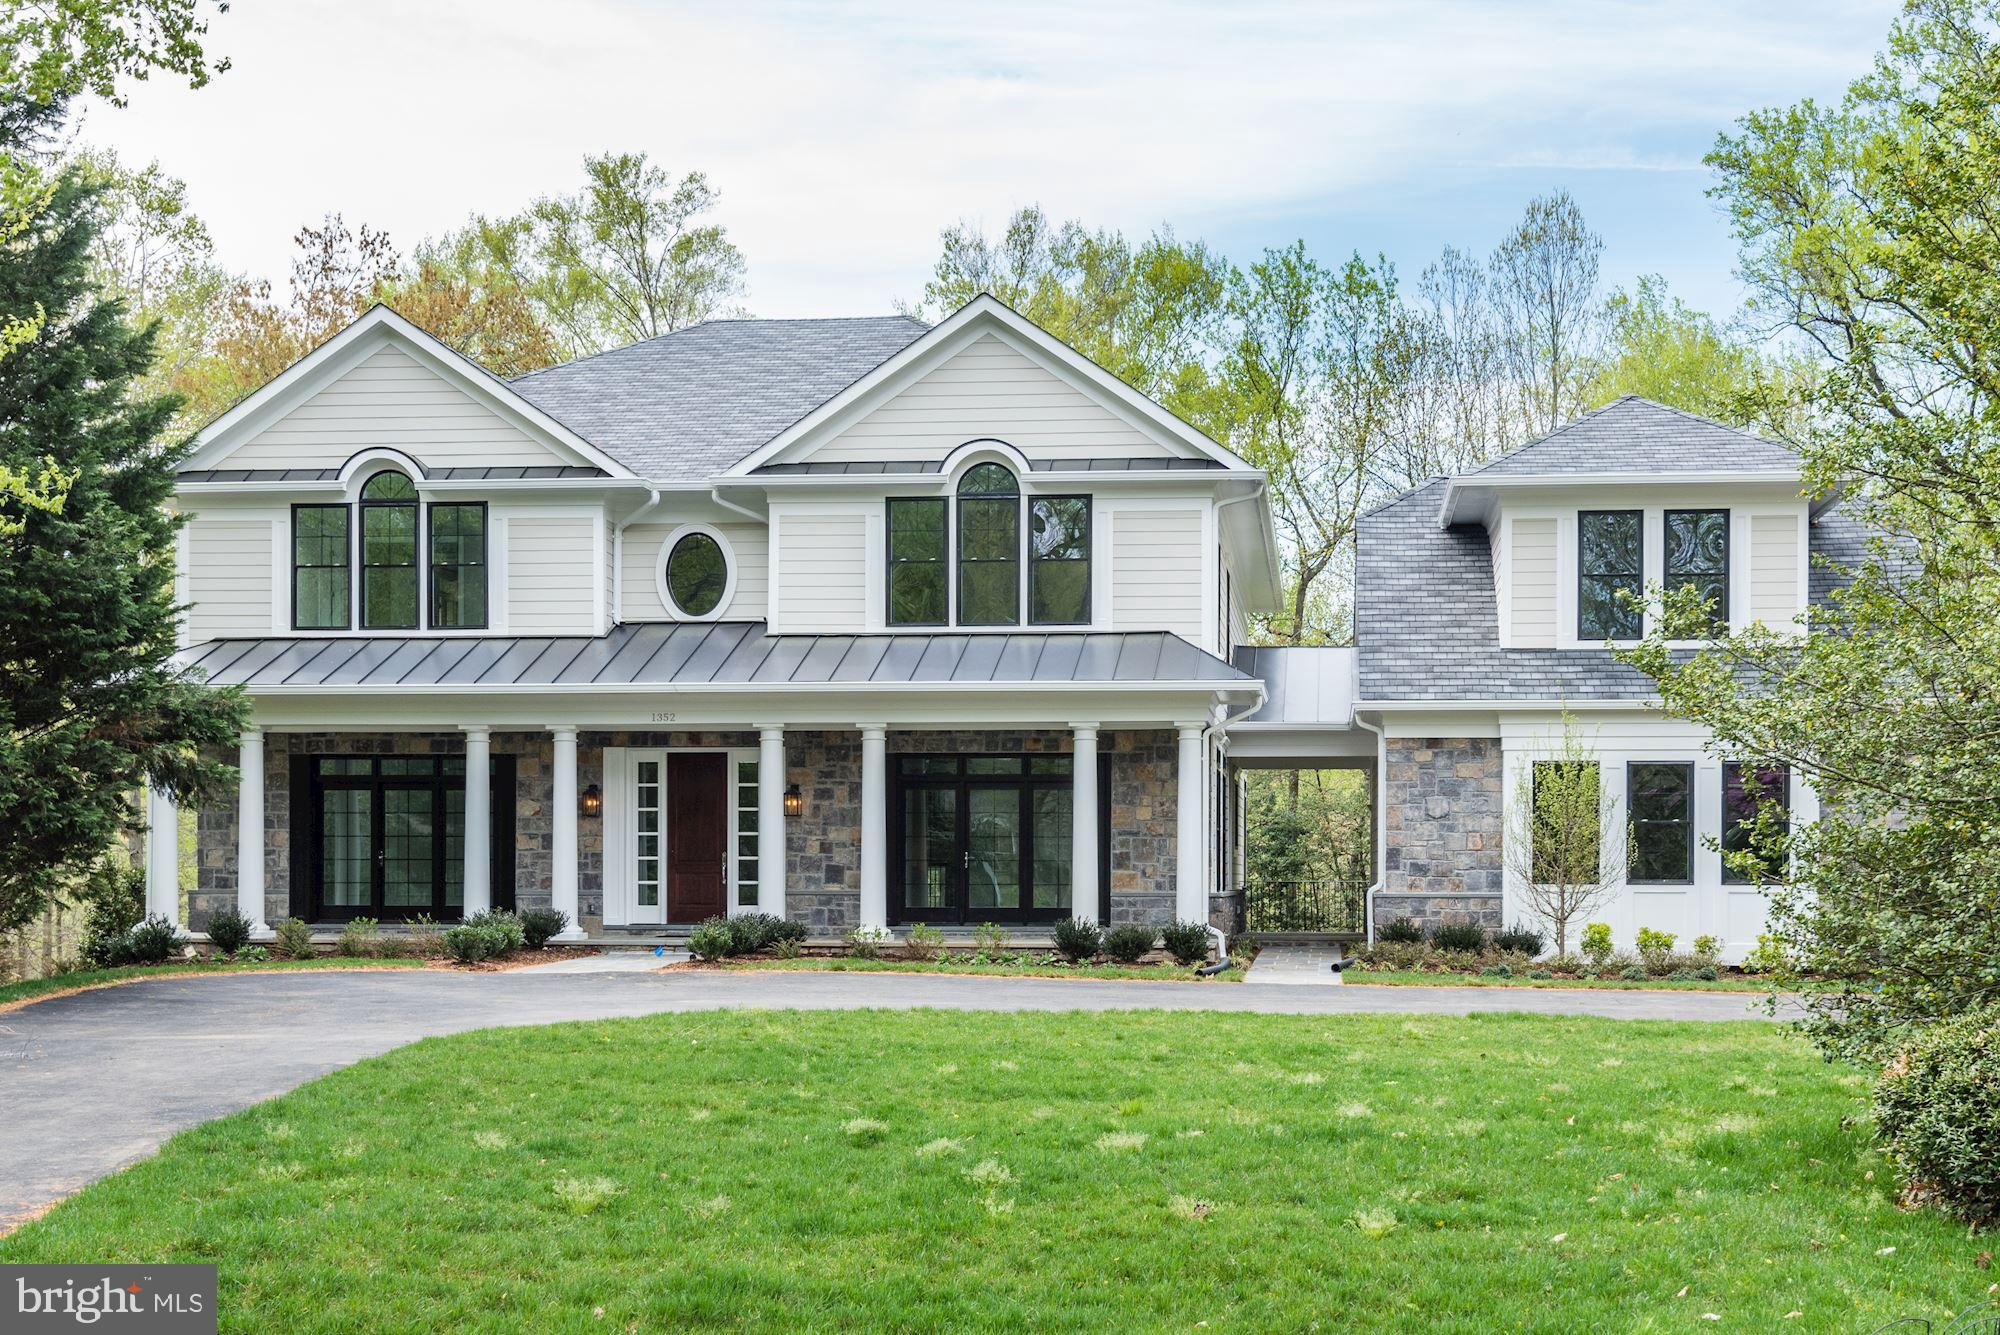 Samson Properties - Buying and Selling Homes in VA, DC, & MD